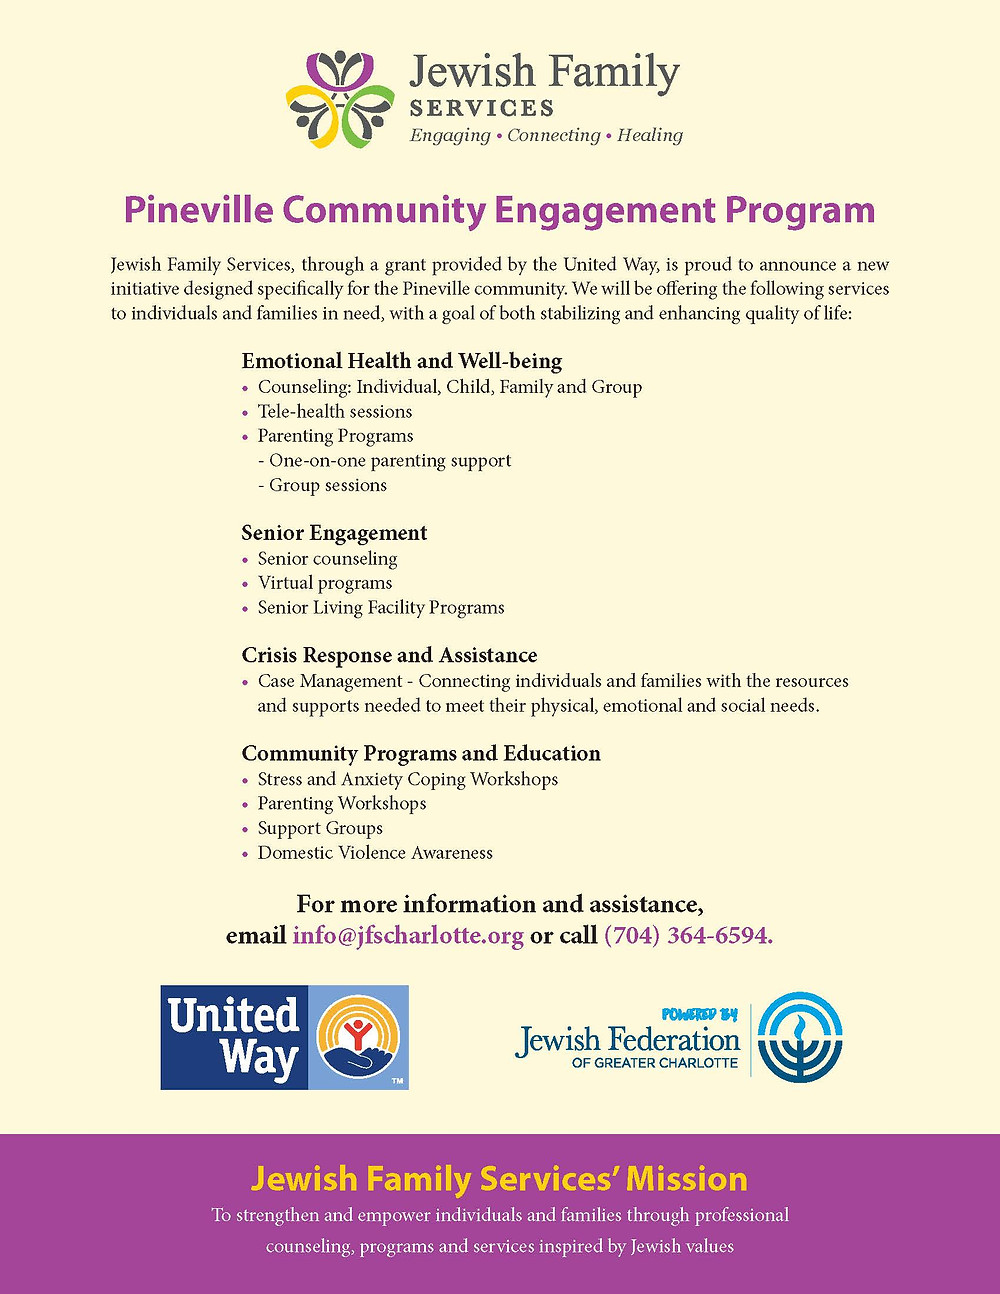 Jewish Family Services Pineville Community Engagement Program